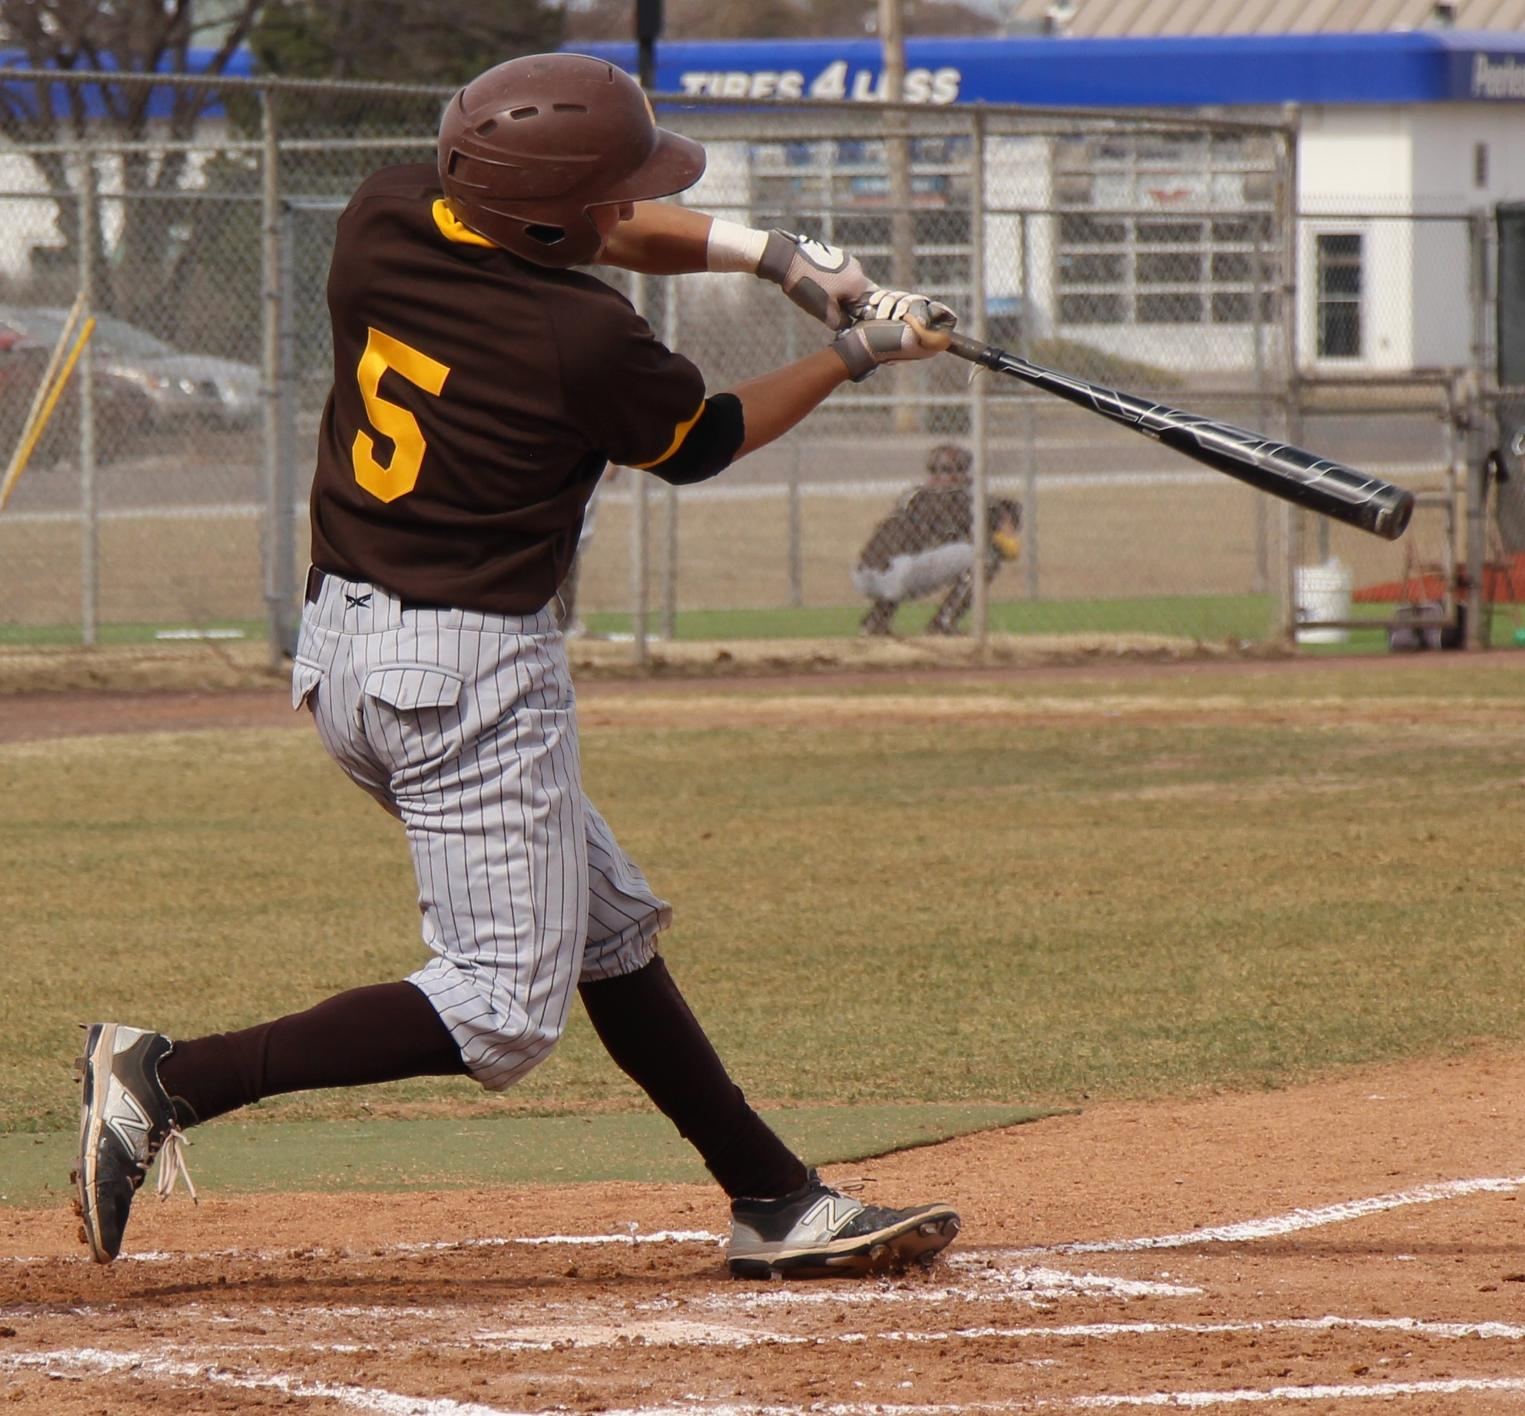 Busters Drop Game II to Indian Hills 8-6 in Extra Innings